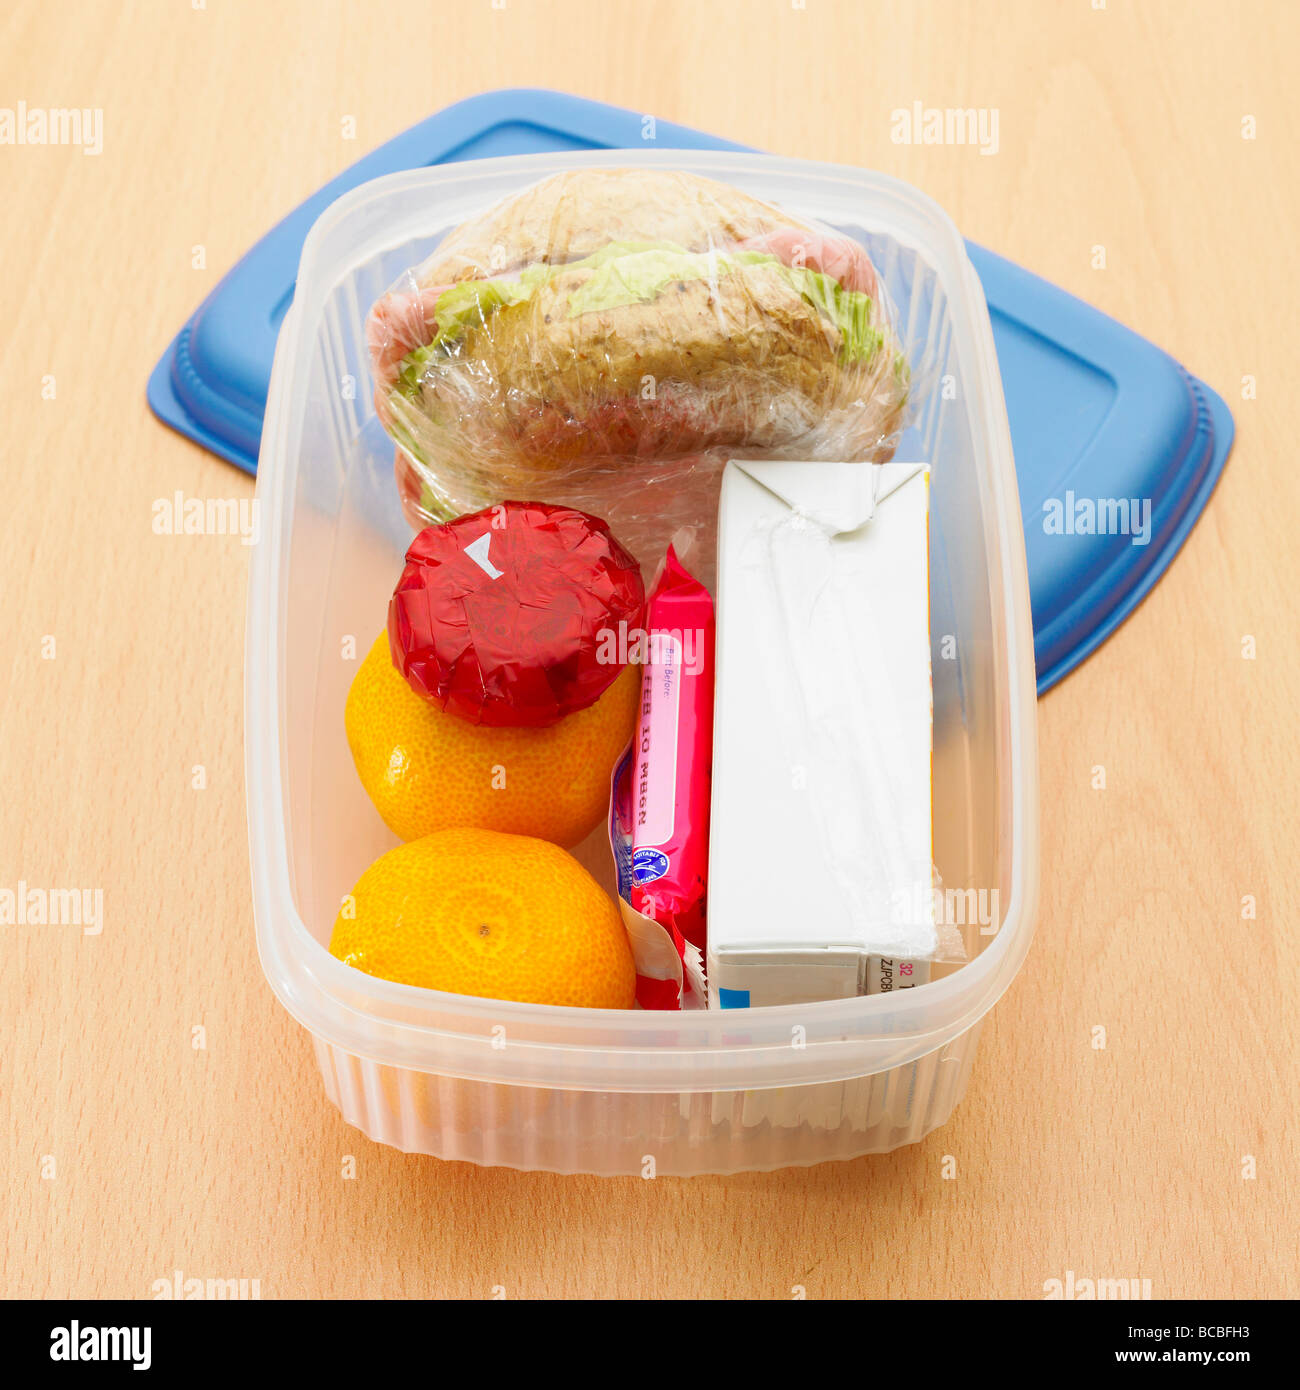 Healthy lunch box with wholemeal roll, satsumas, mini light cheese, orange juice and biscuit. - Stock Image